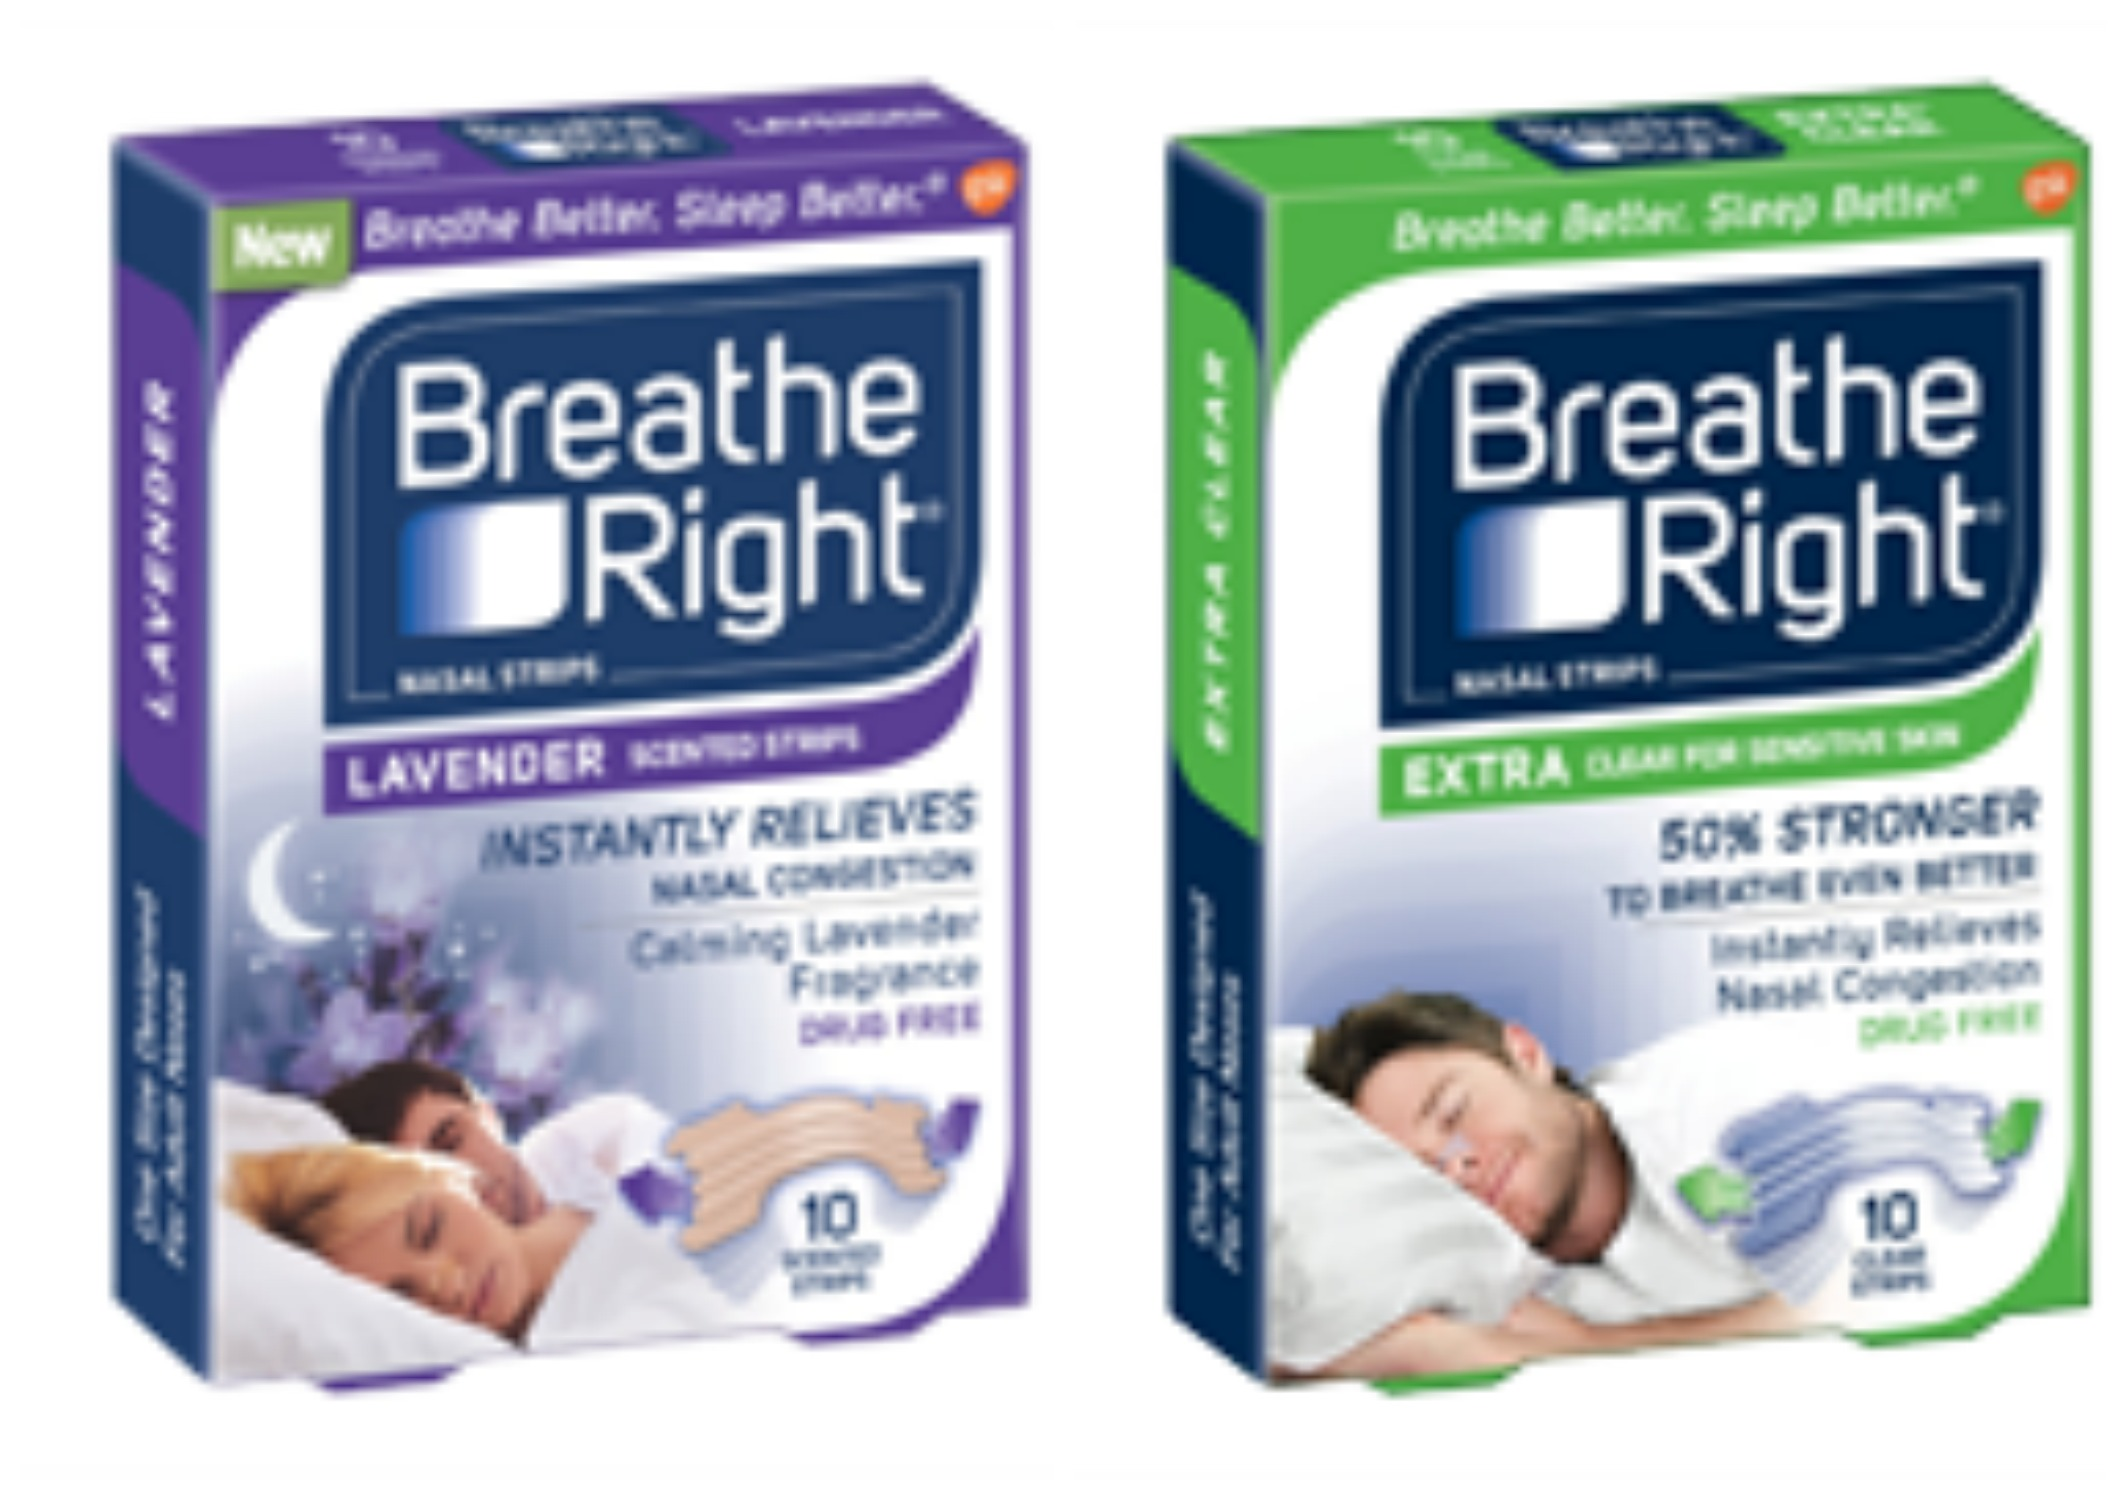 Costco Print Sizes >> New Breathe Right Coupon - No Size Restrictions!